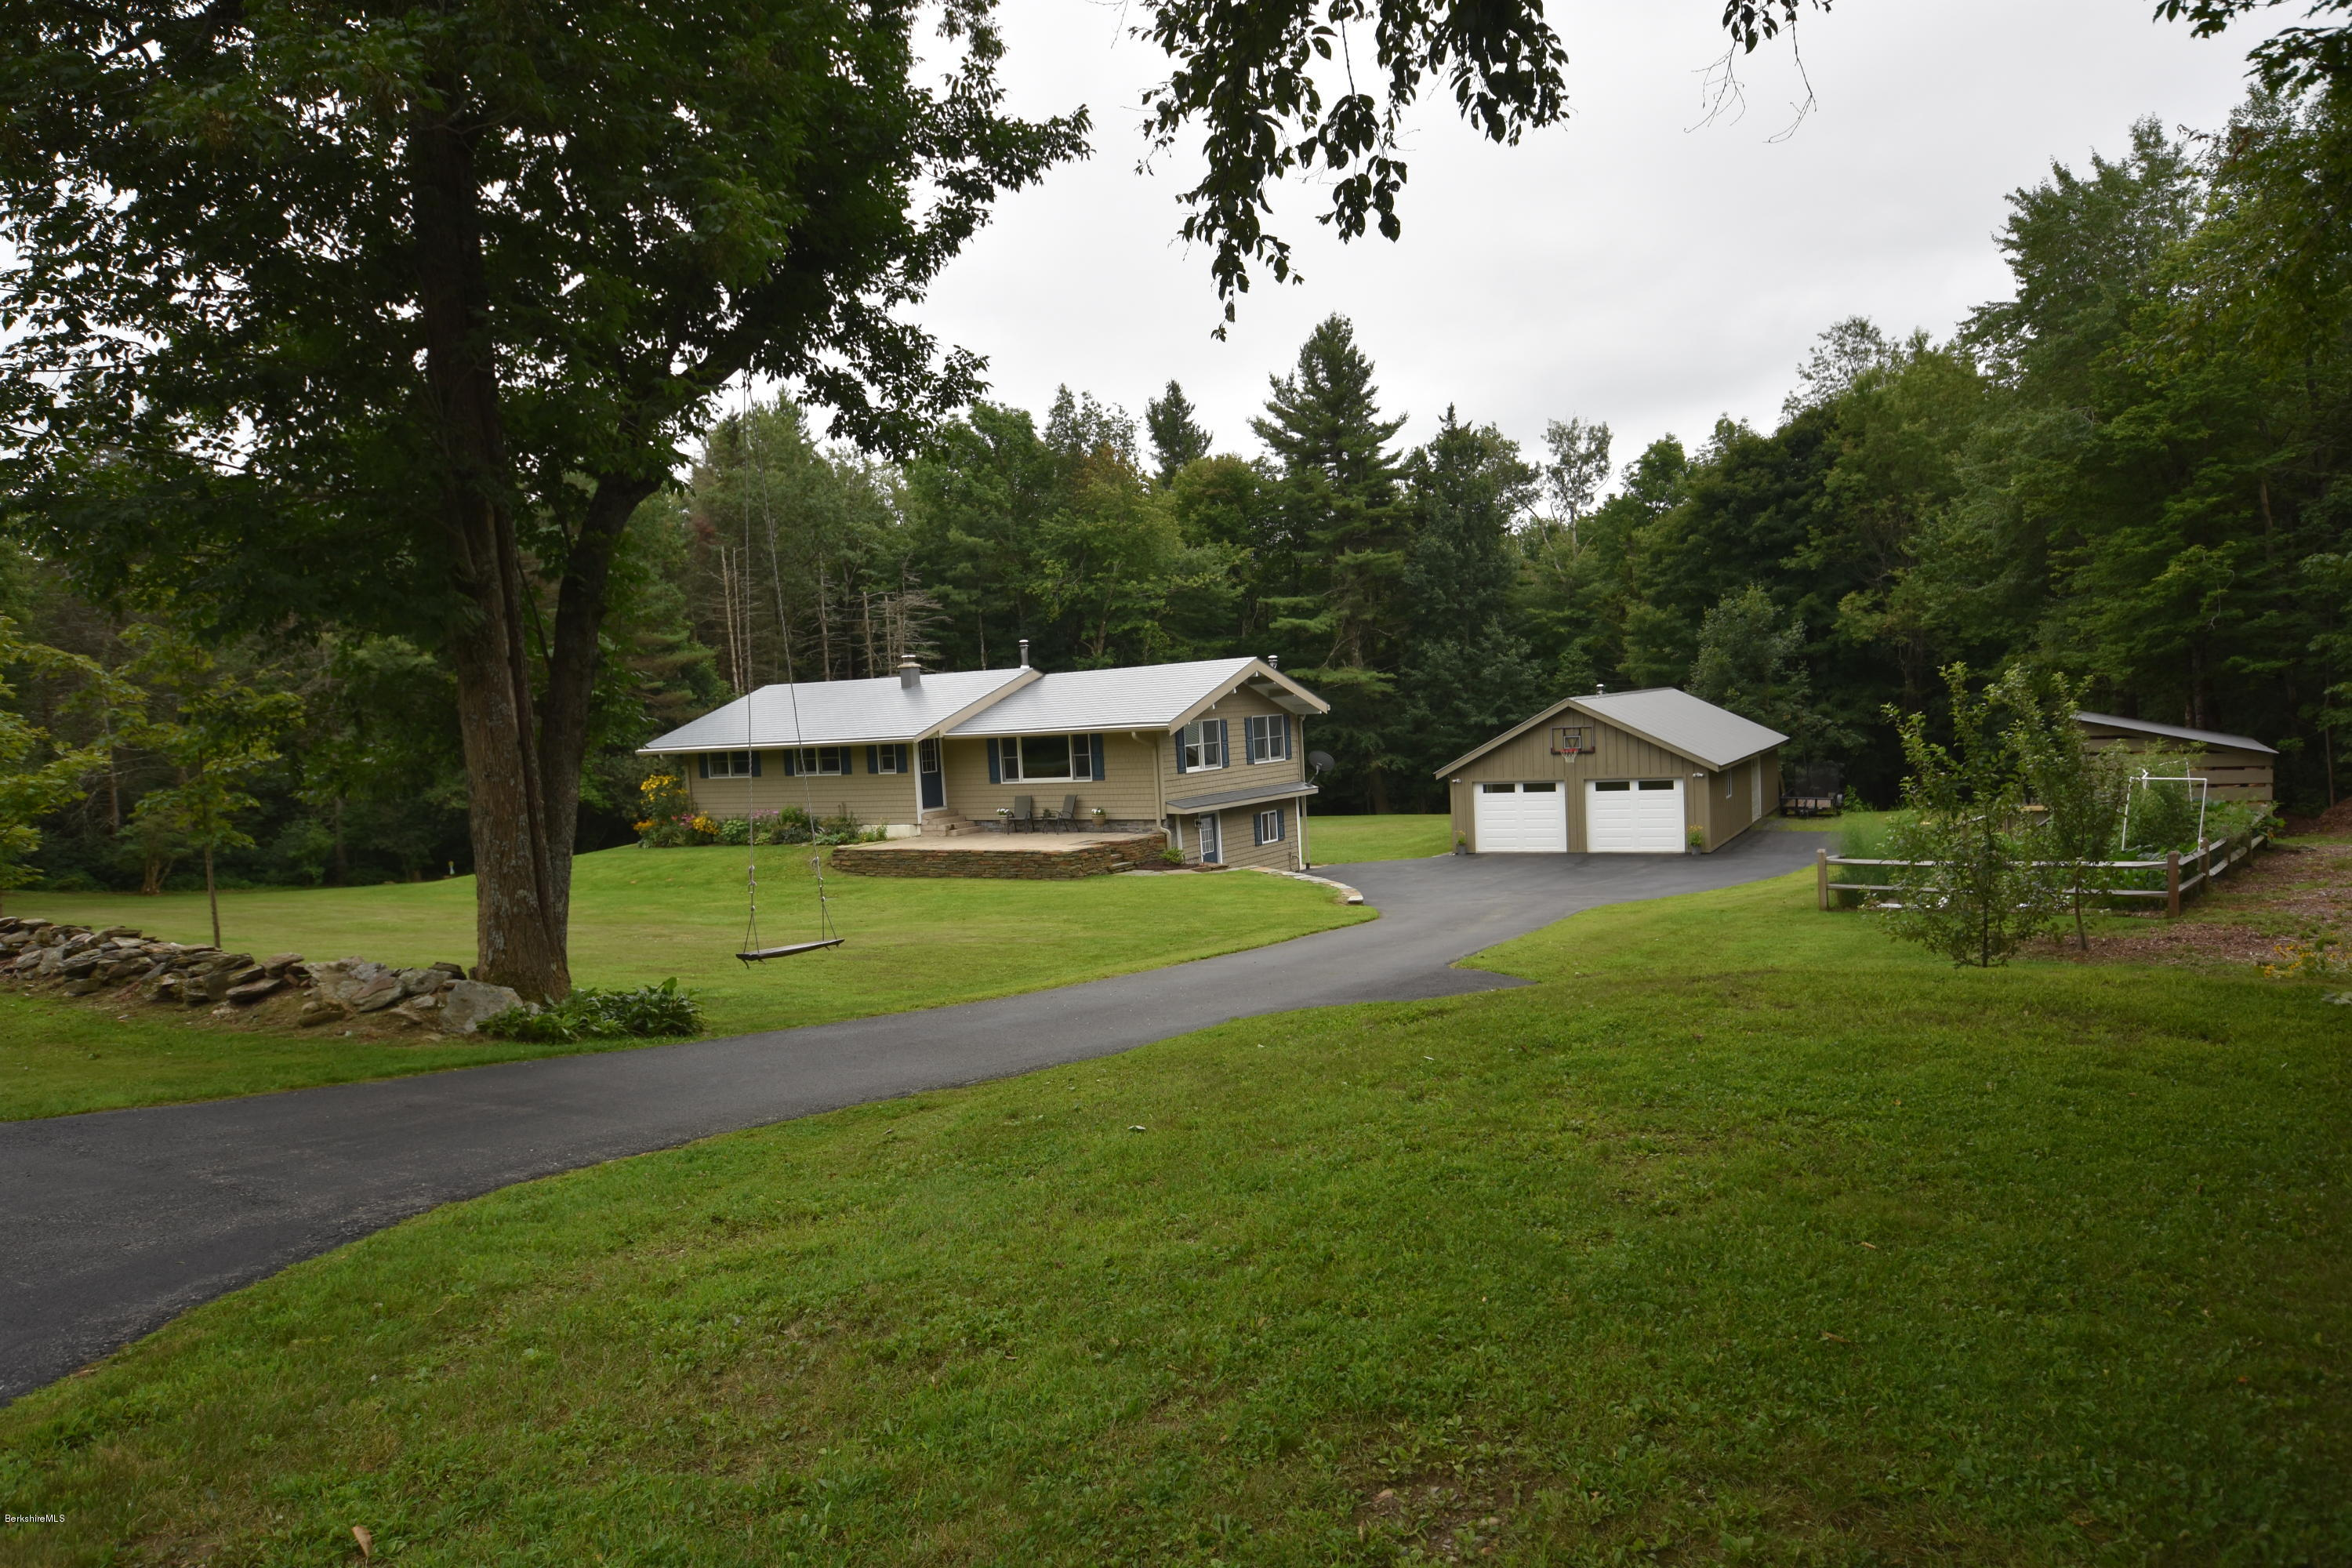 687 Shaw Rd, Windsor, MA 01270 | Stone House Properties, LLC Ranch House Exterior Stone Amp Har Board Design on